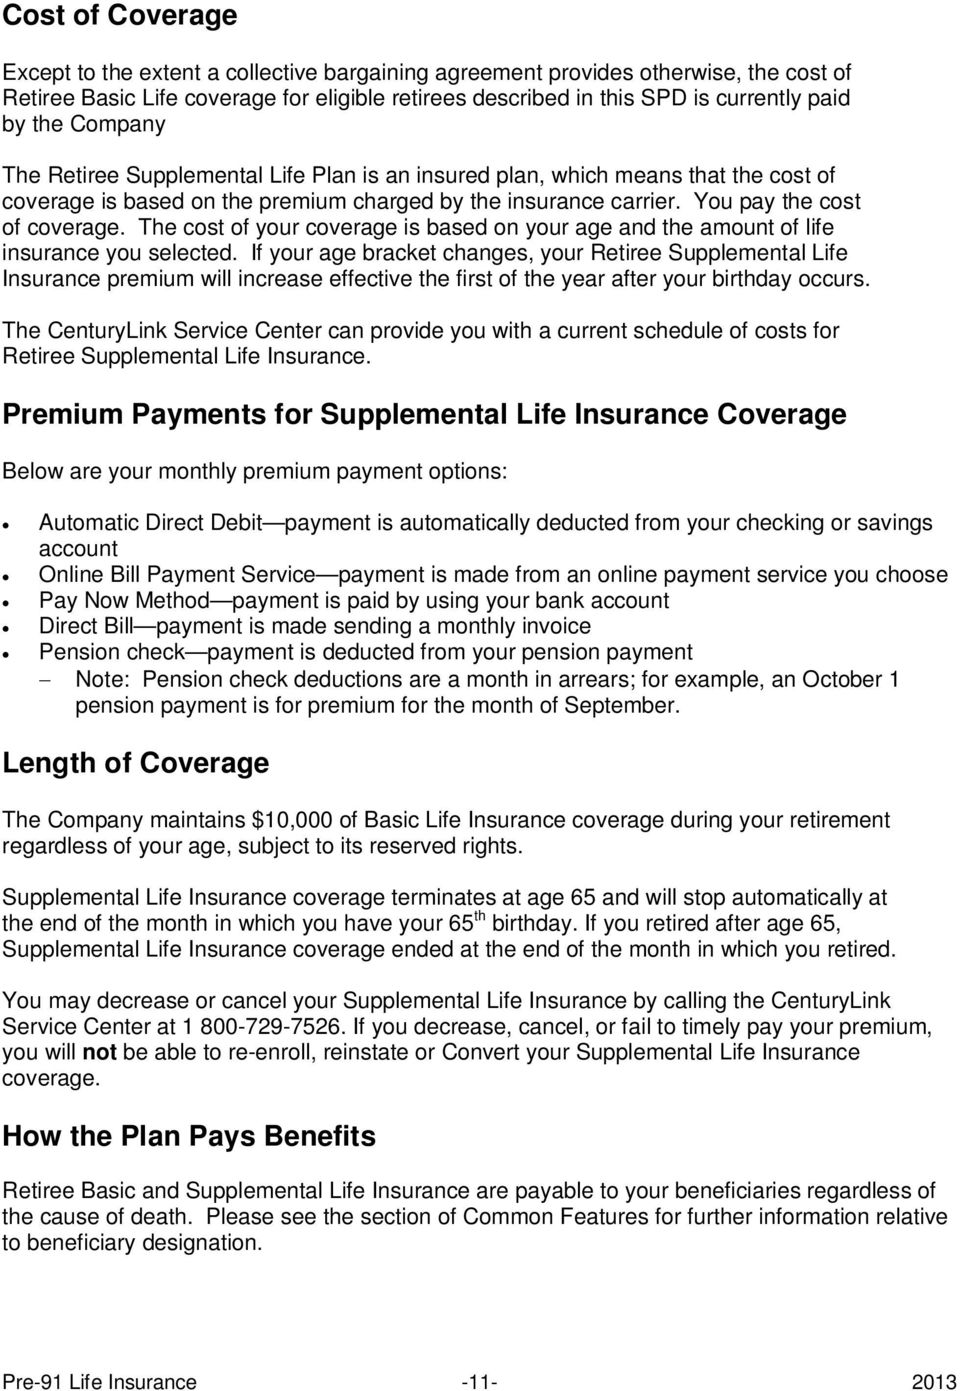 The cost of your coverage is based on your age and the amount of life insurance you selected.